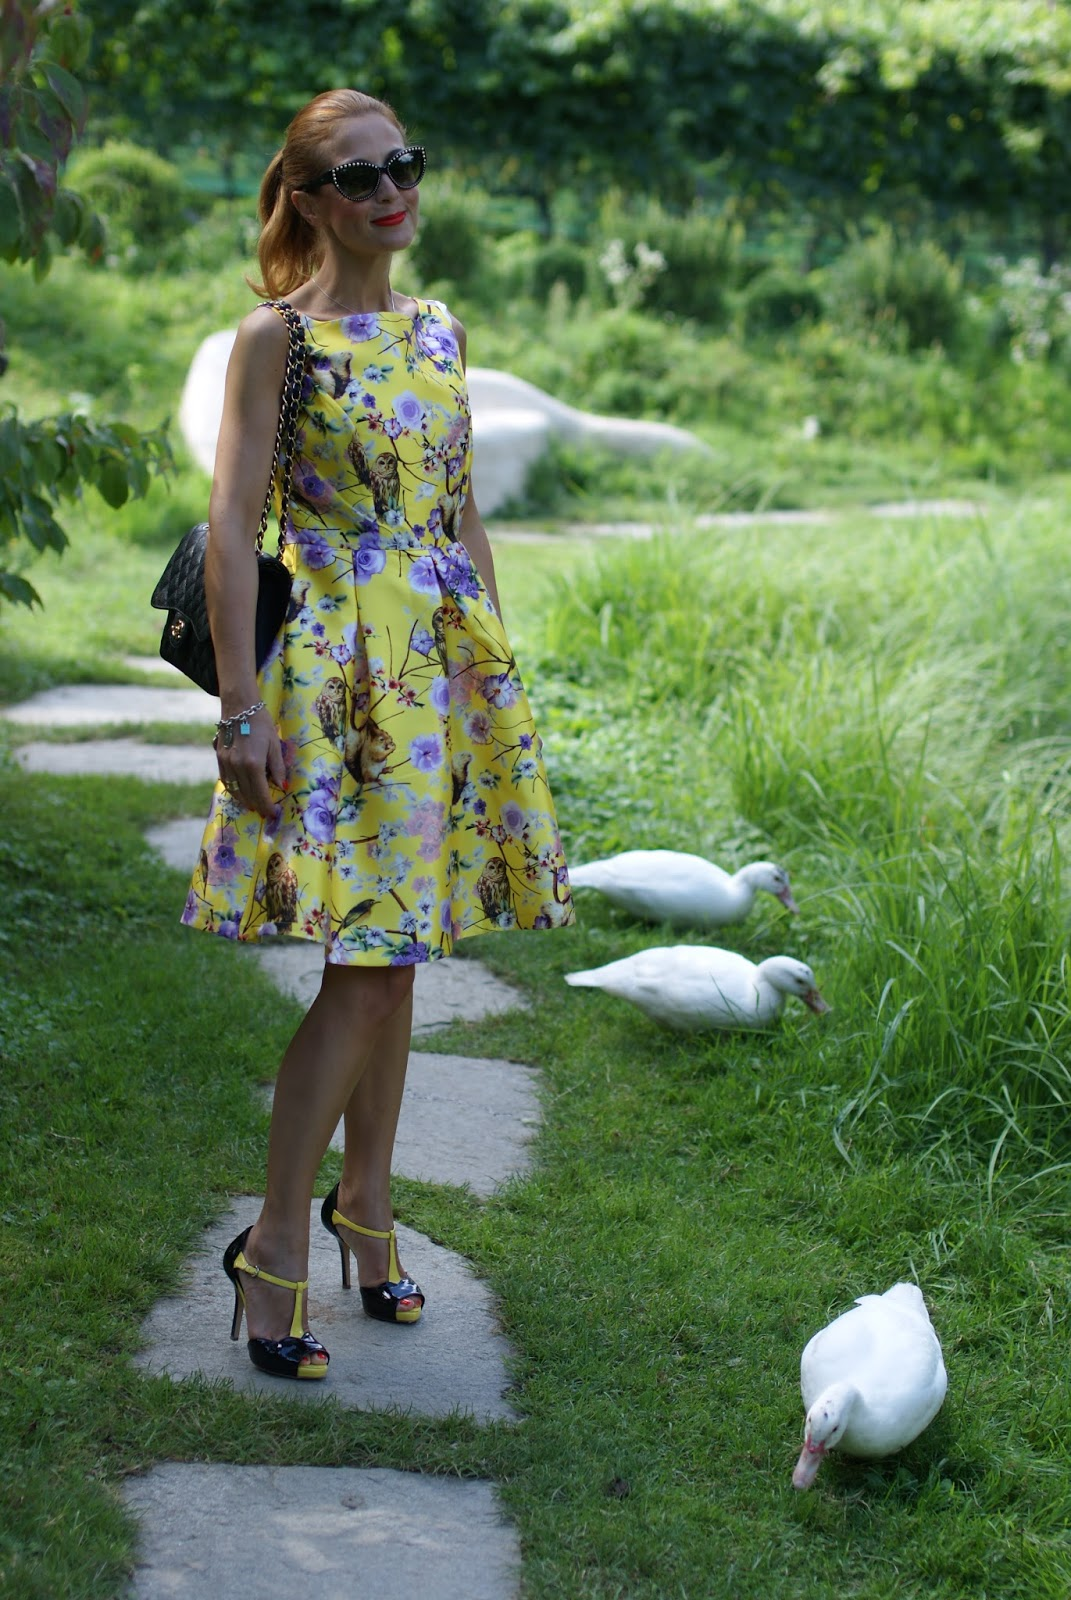 Duck fashion show or just a girly bon ton outfit on Fashion and Cookies fashion blog